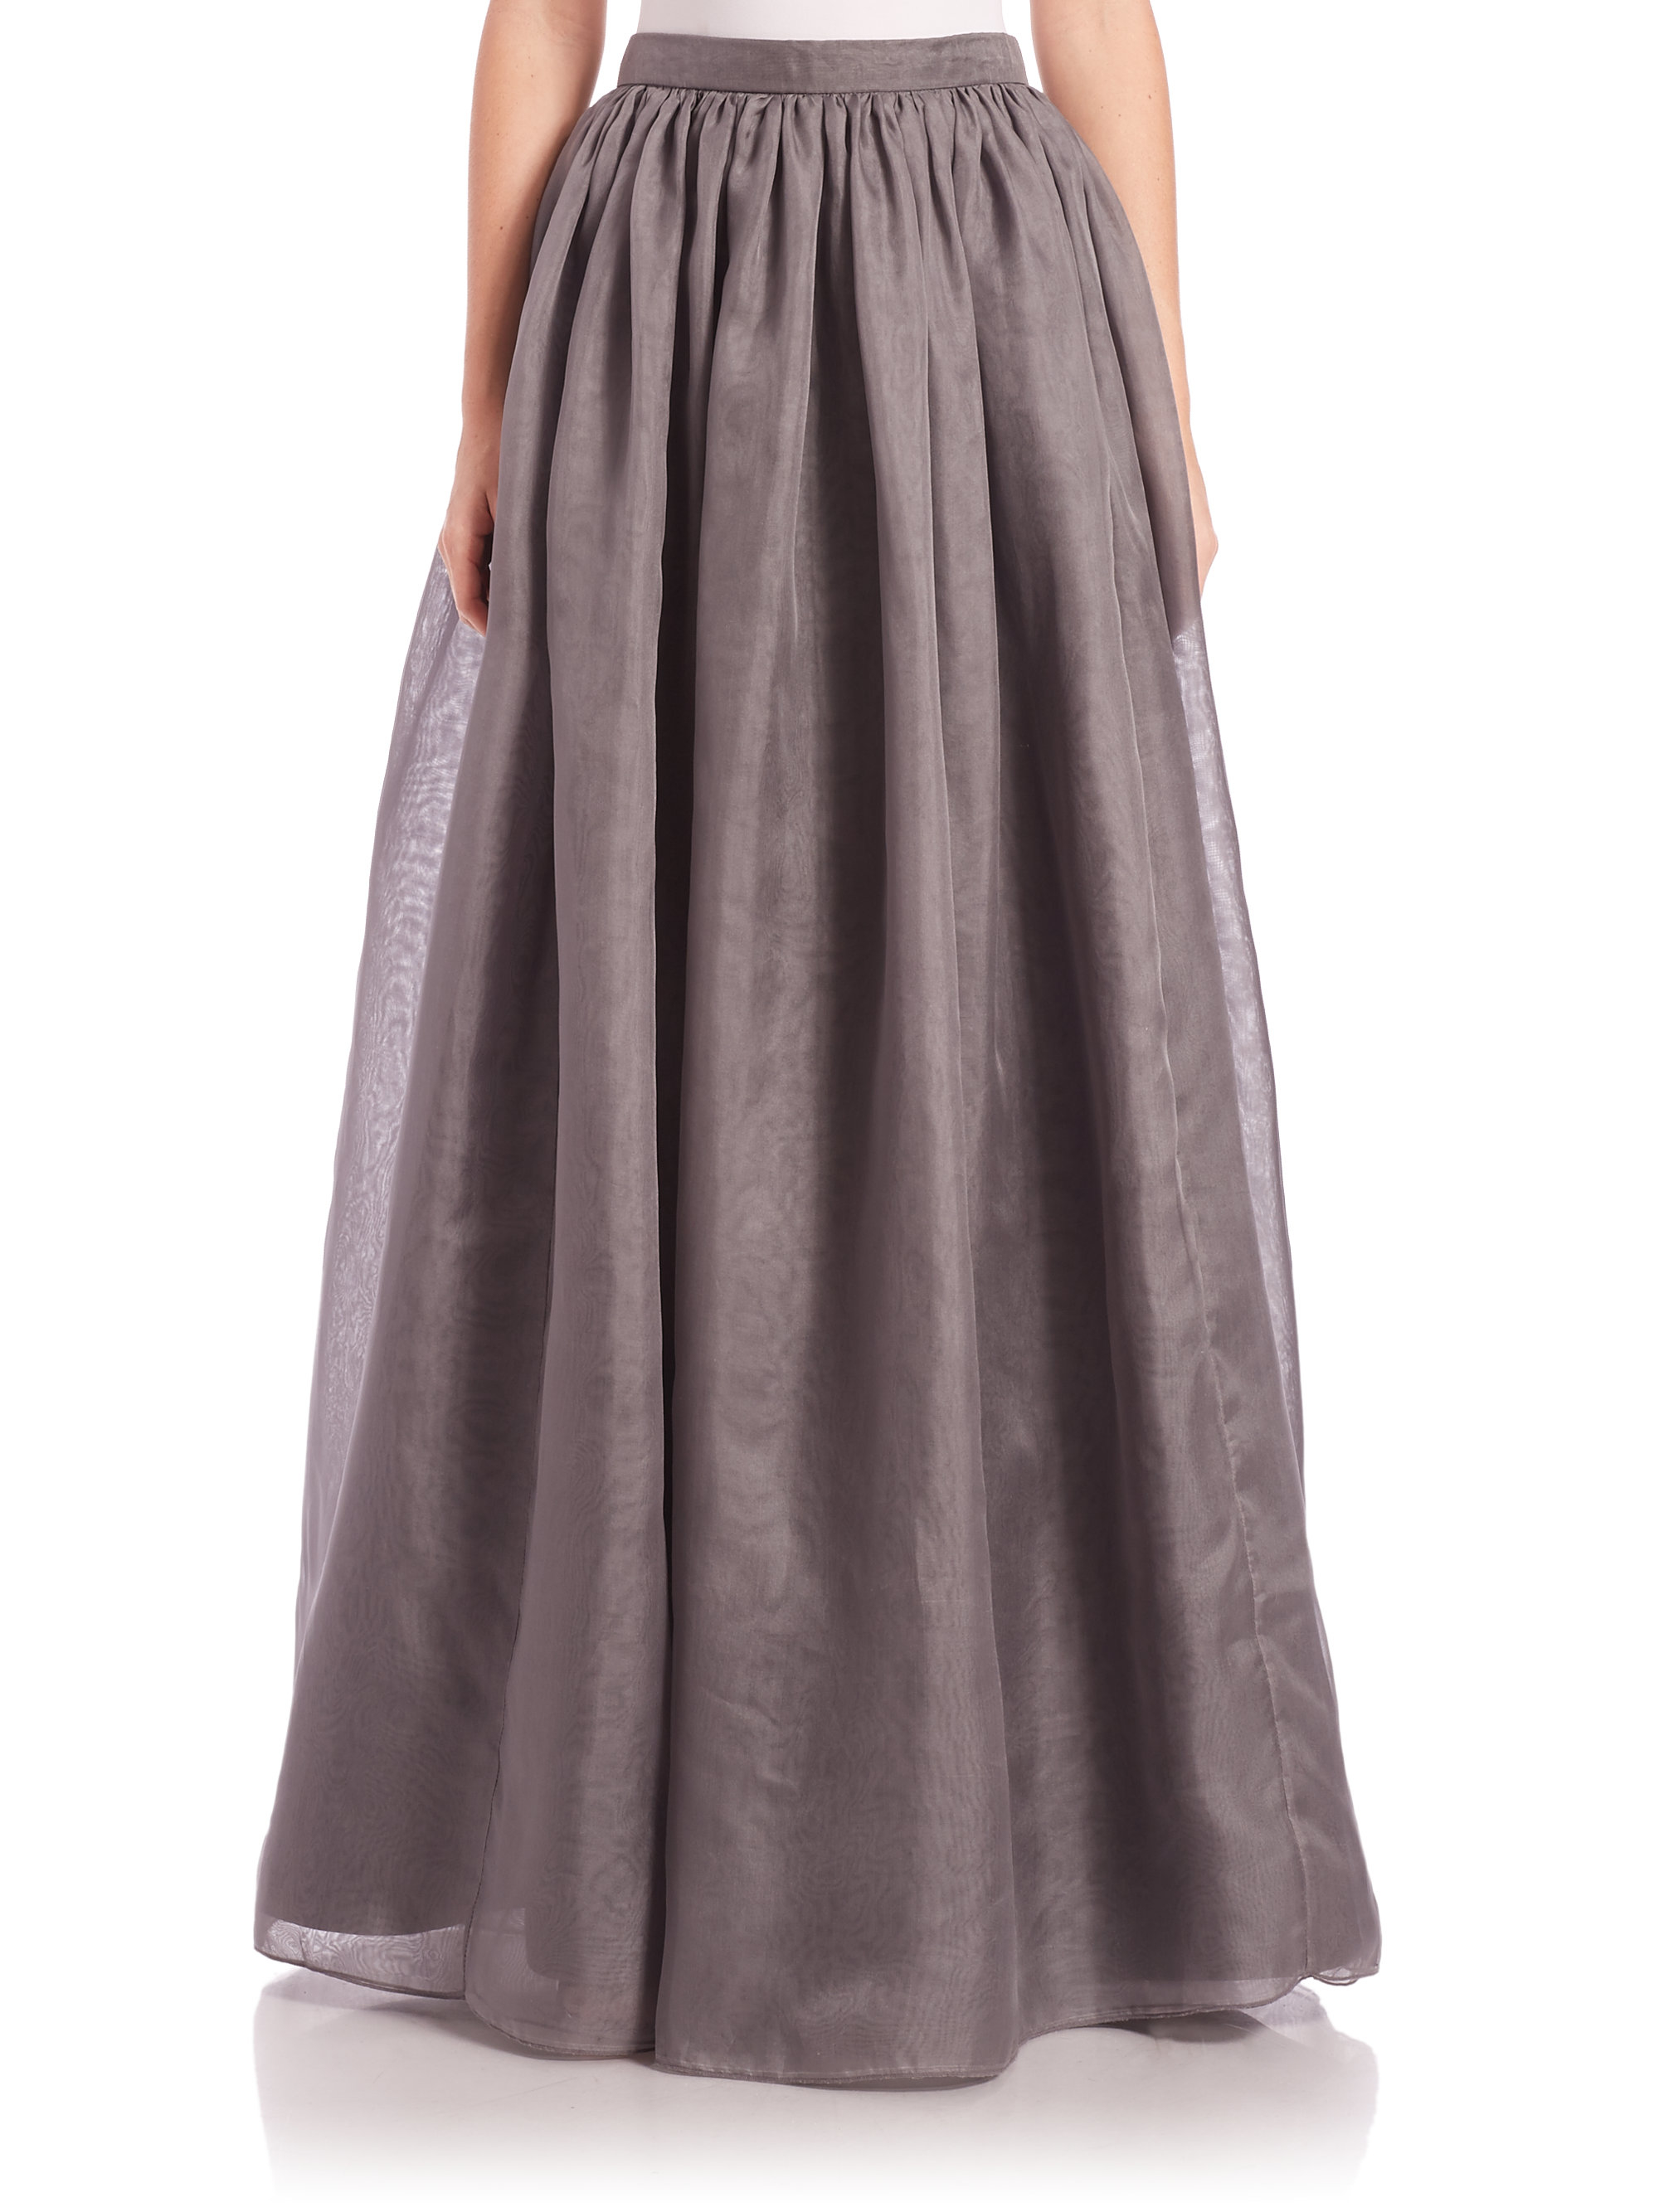 Lyst - Alice + Olivia Abella Silk Ball-gown Skirt in Gray